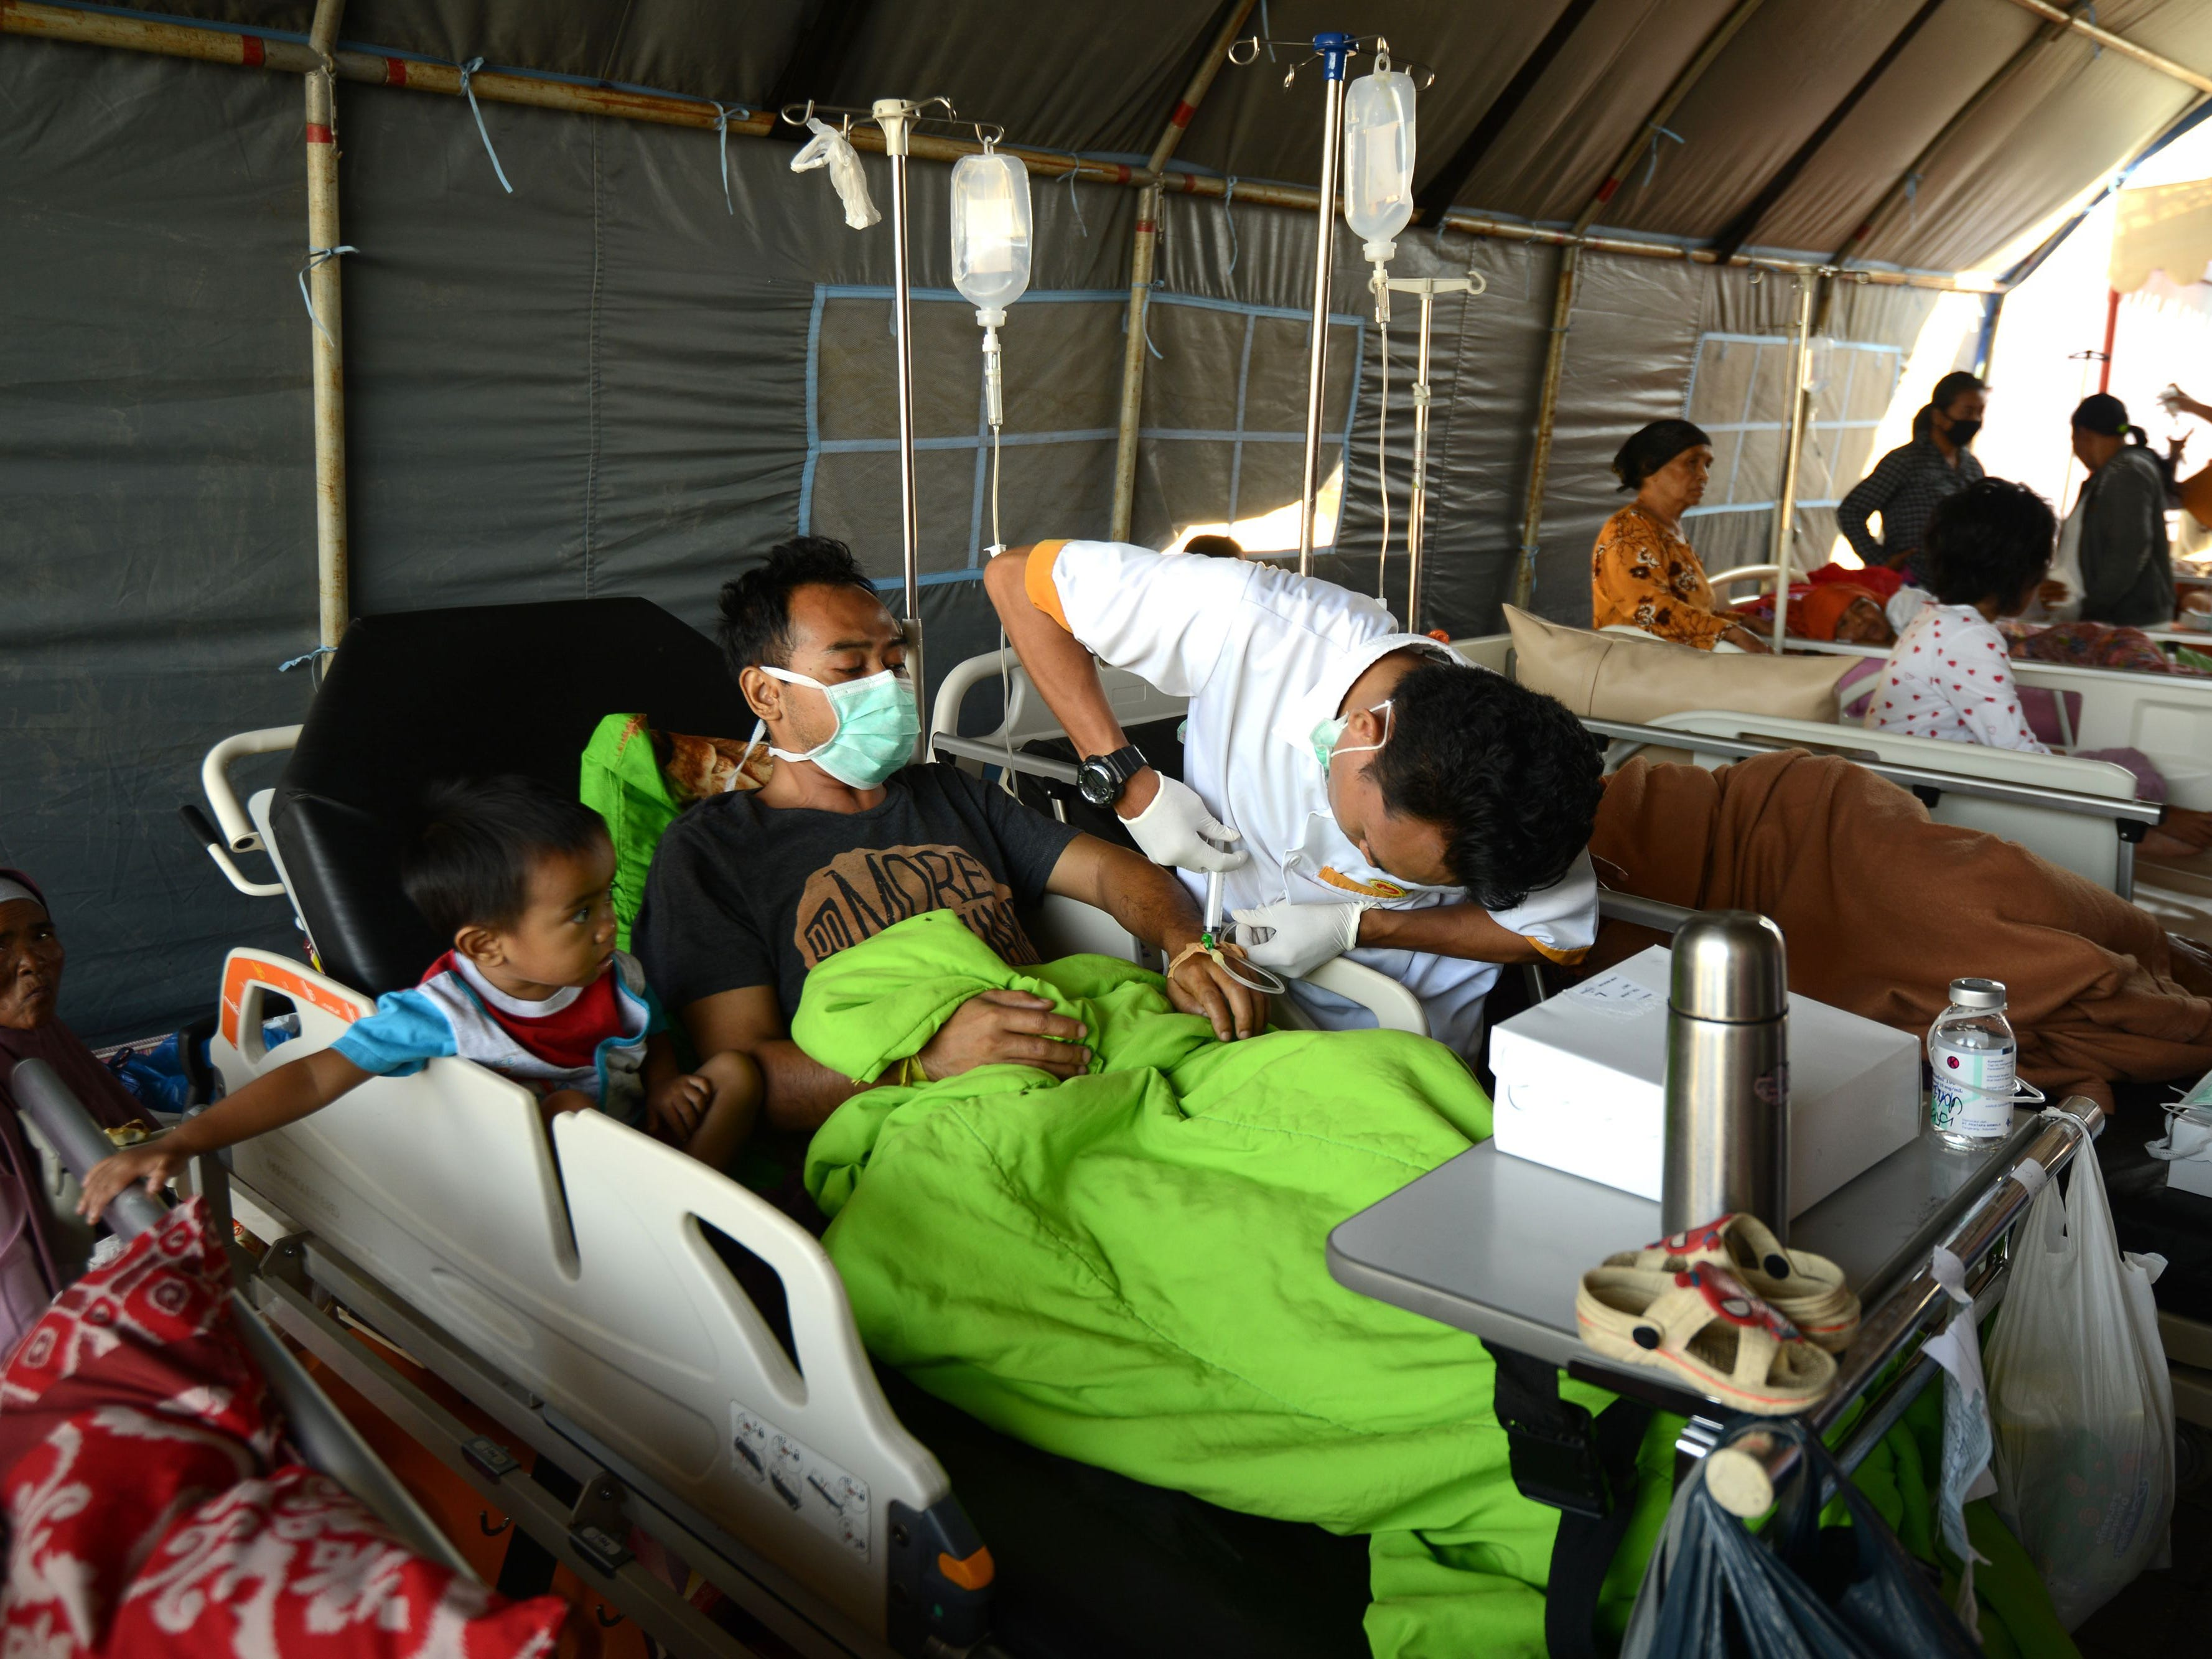 An earthquake survivor receives medical attention at the Moh. Ruslan hospital in Mataram on West Nusa Tenggara province on Aug. 7, 2018, after an earthquake struck the Indonesian holiday island of Lombok on Sunday.Indonesia on Aug. 6 sent rescuers fanning out across the holiday island of Lombok and evacuated more than 2,000 tourists after a powerful earthquake killed at least 98 people and damaged thousands of buildings.